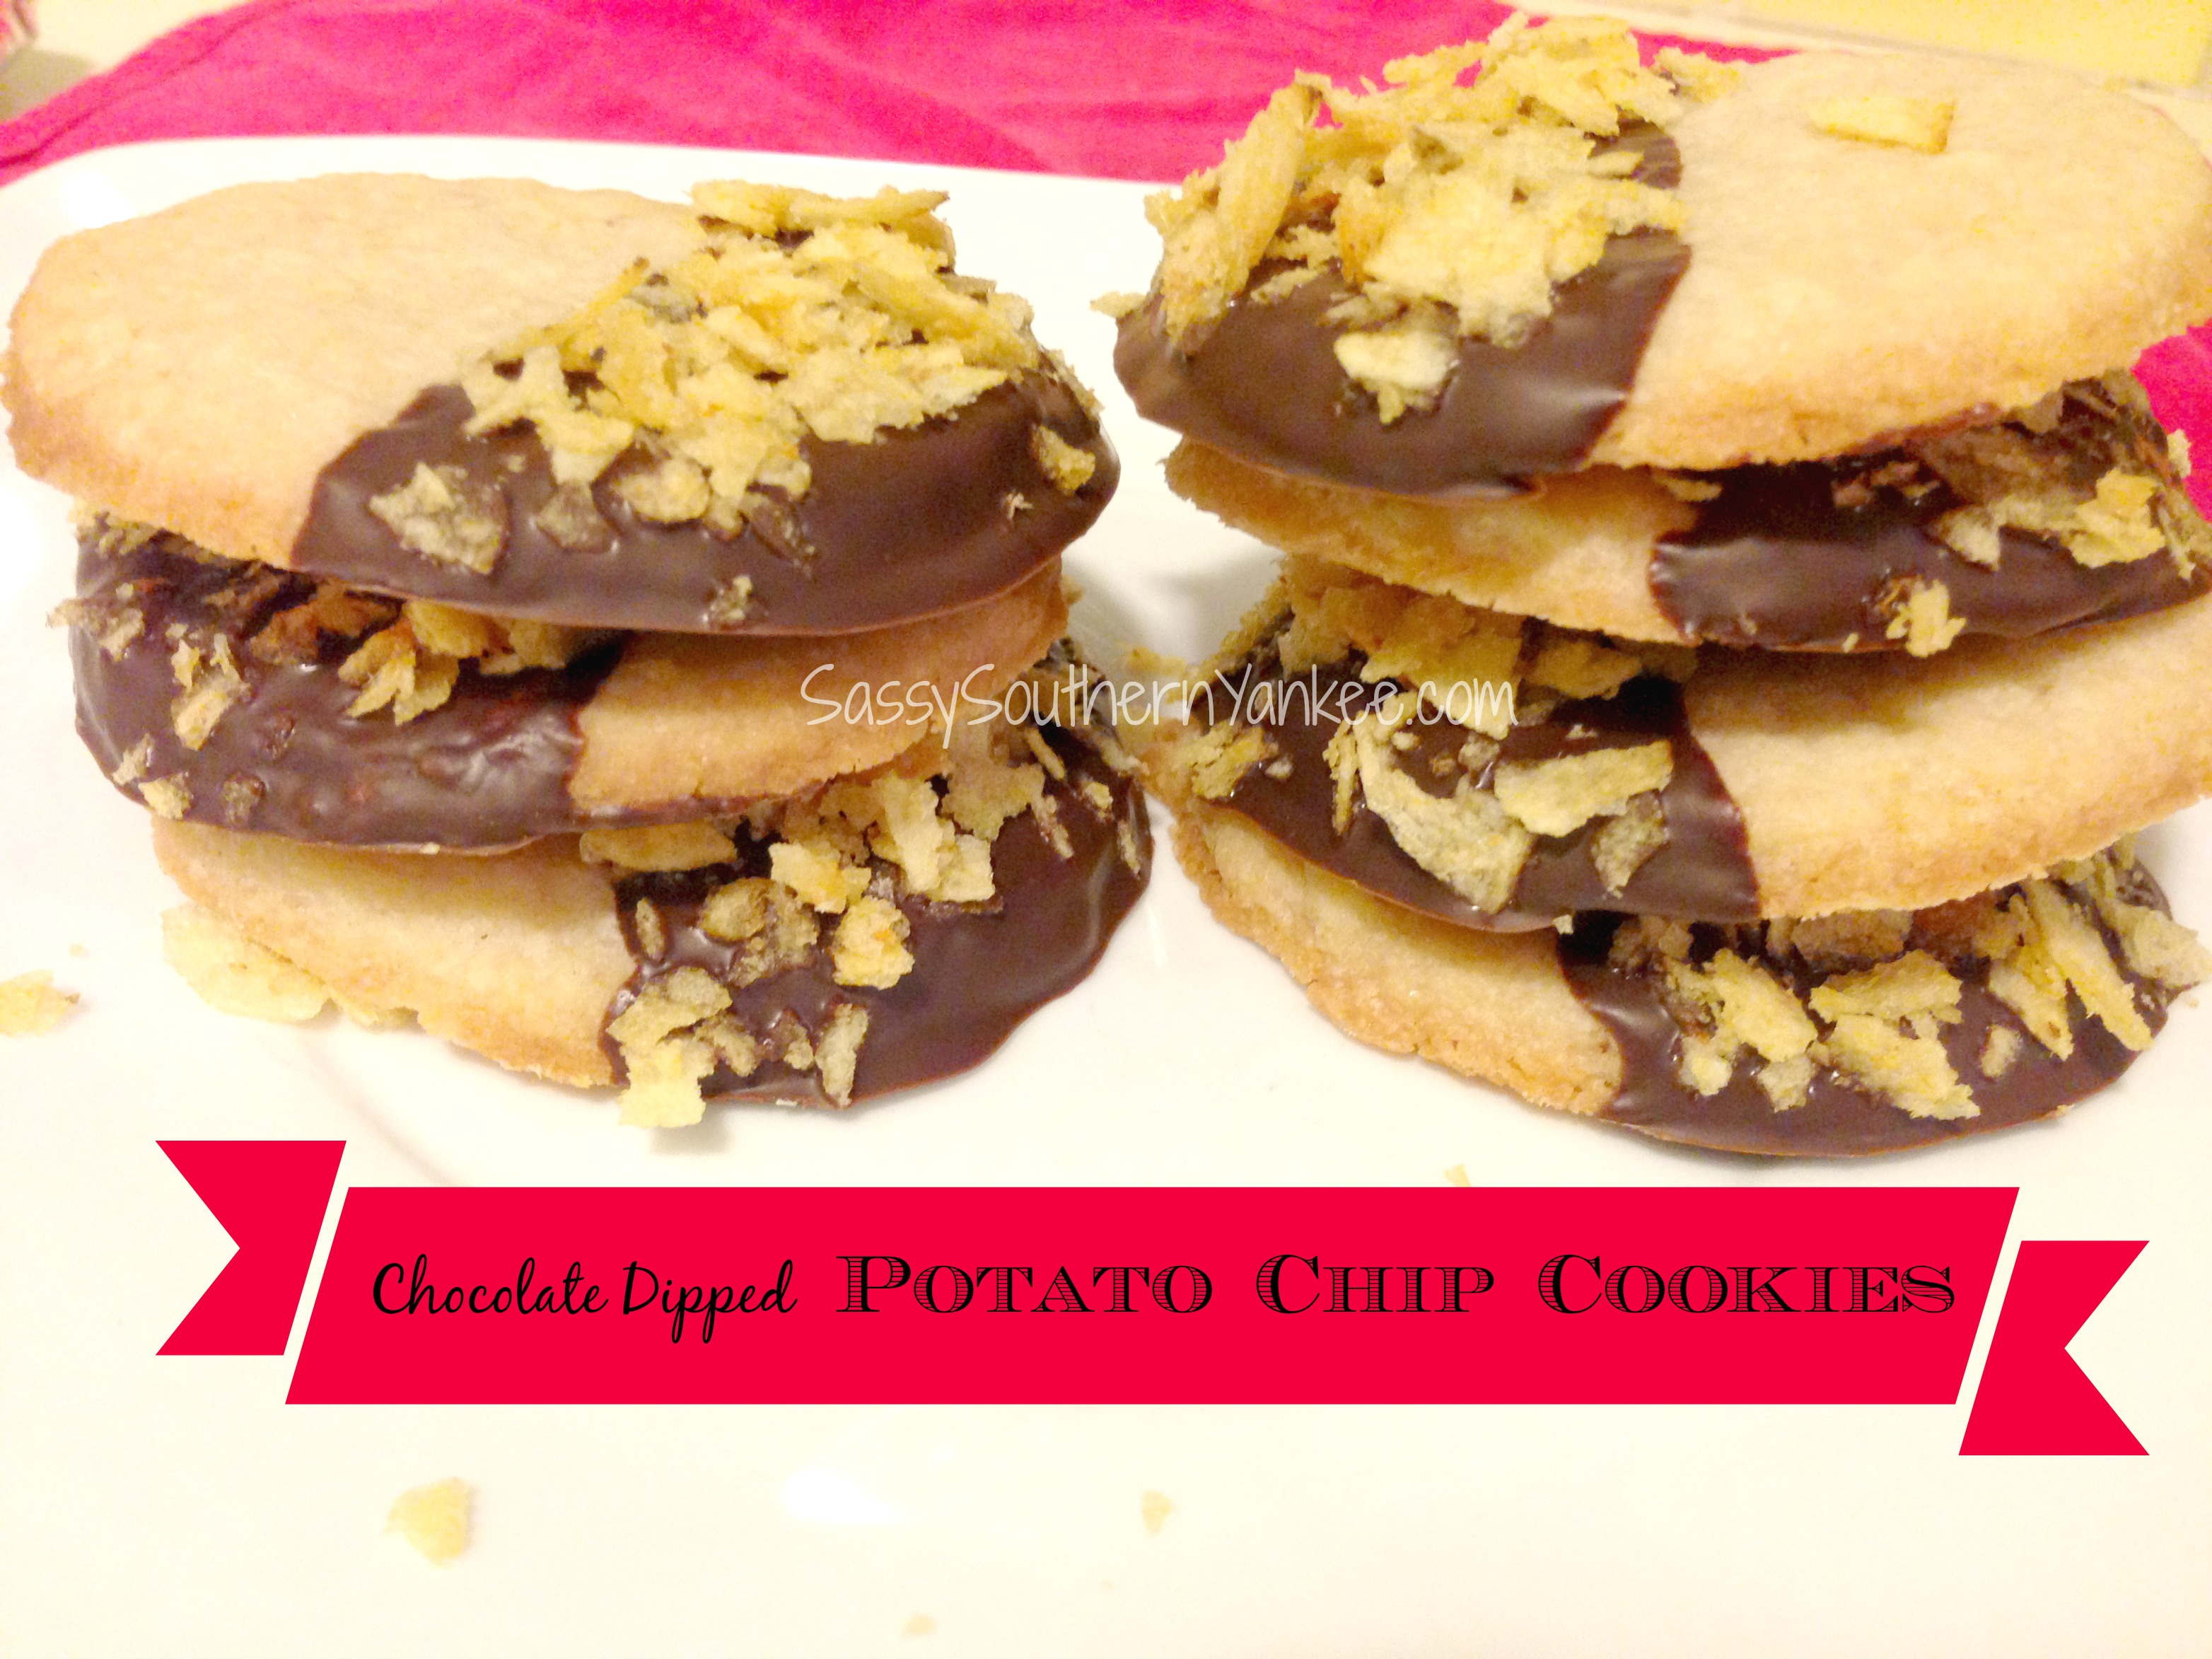 Chocolate Dipped Potato Chip Cookie | Sassy Southern Yankee